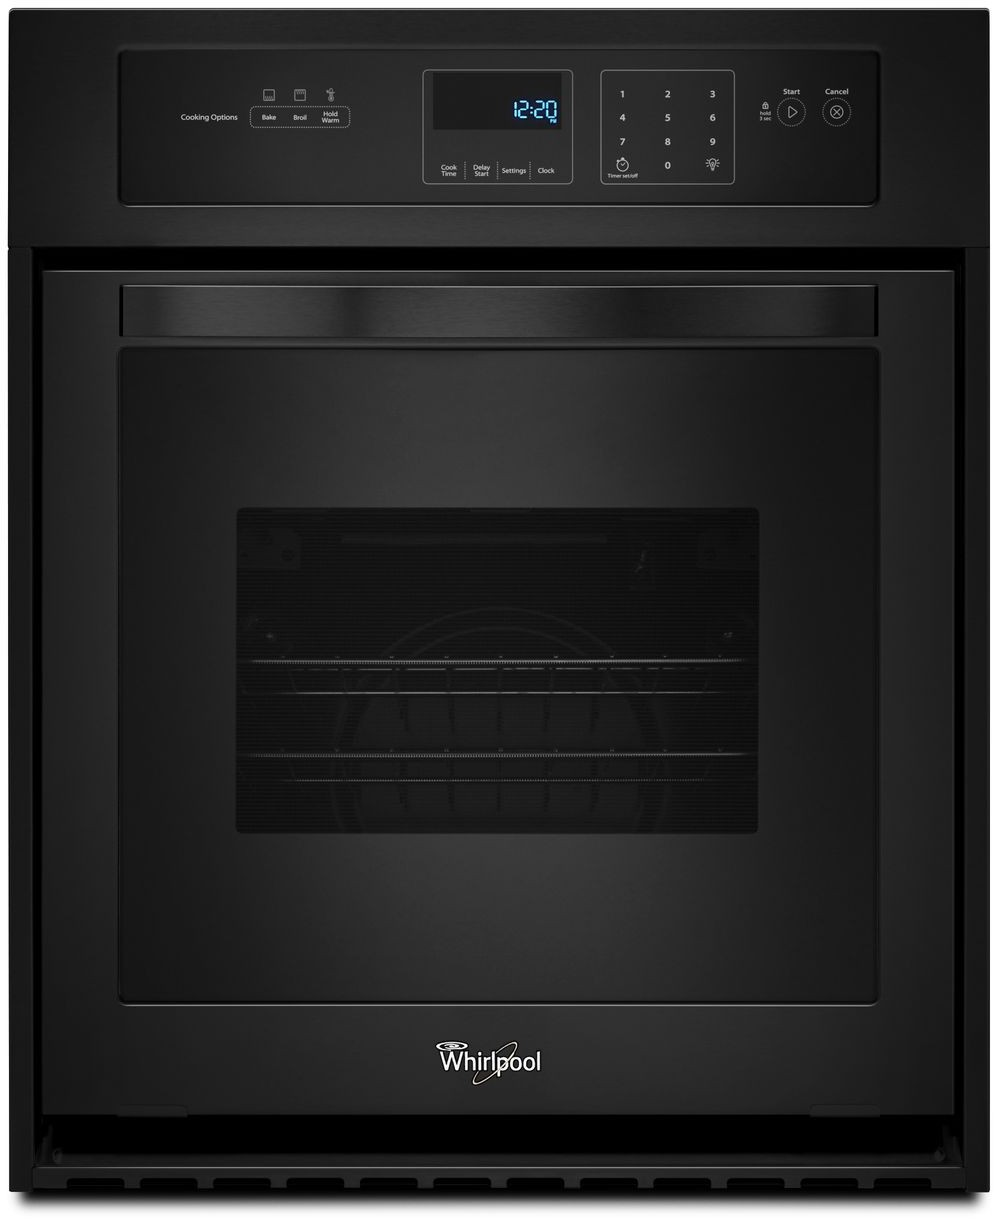 Whirlpool Wos11em4eb 24 Inch Single Electric Wall Oven With 3 1 Cu Ft Capacity 3600 Watt Broil Element Dual Interior Lighting Delay Cook Setting Star K Certified Sabbath Mode Ada Compliant And Keep Warm